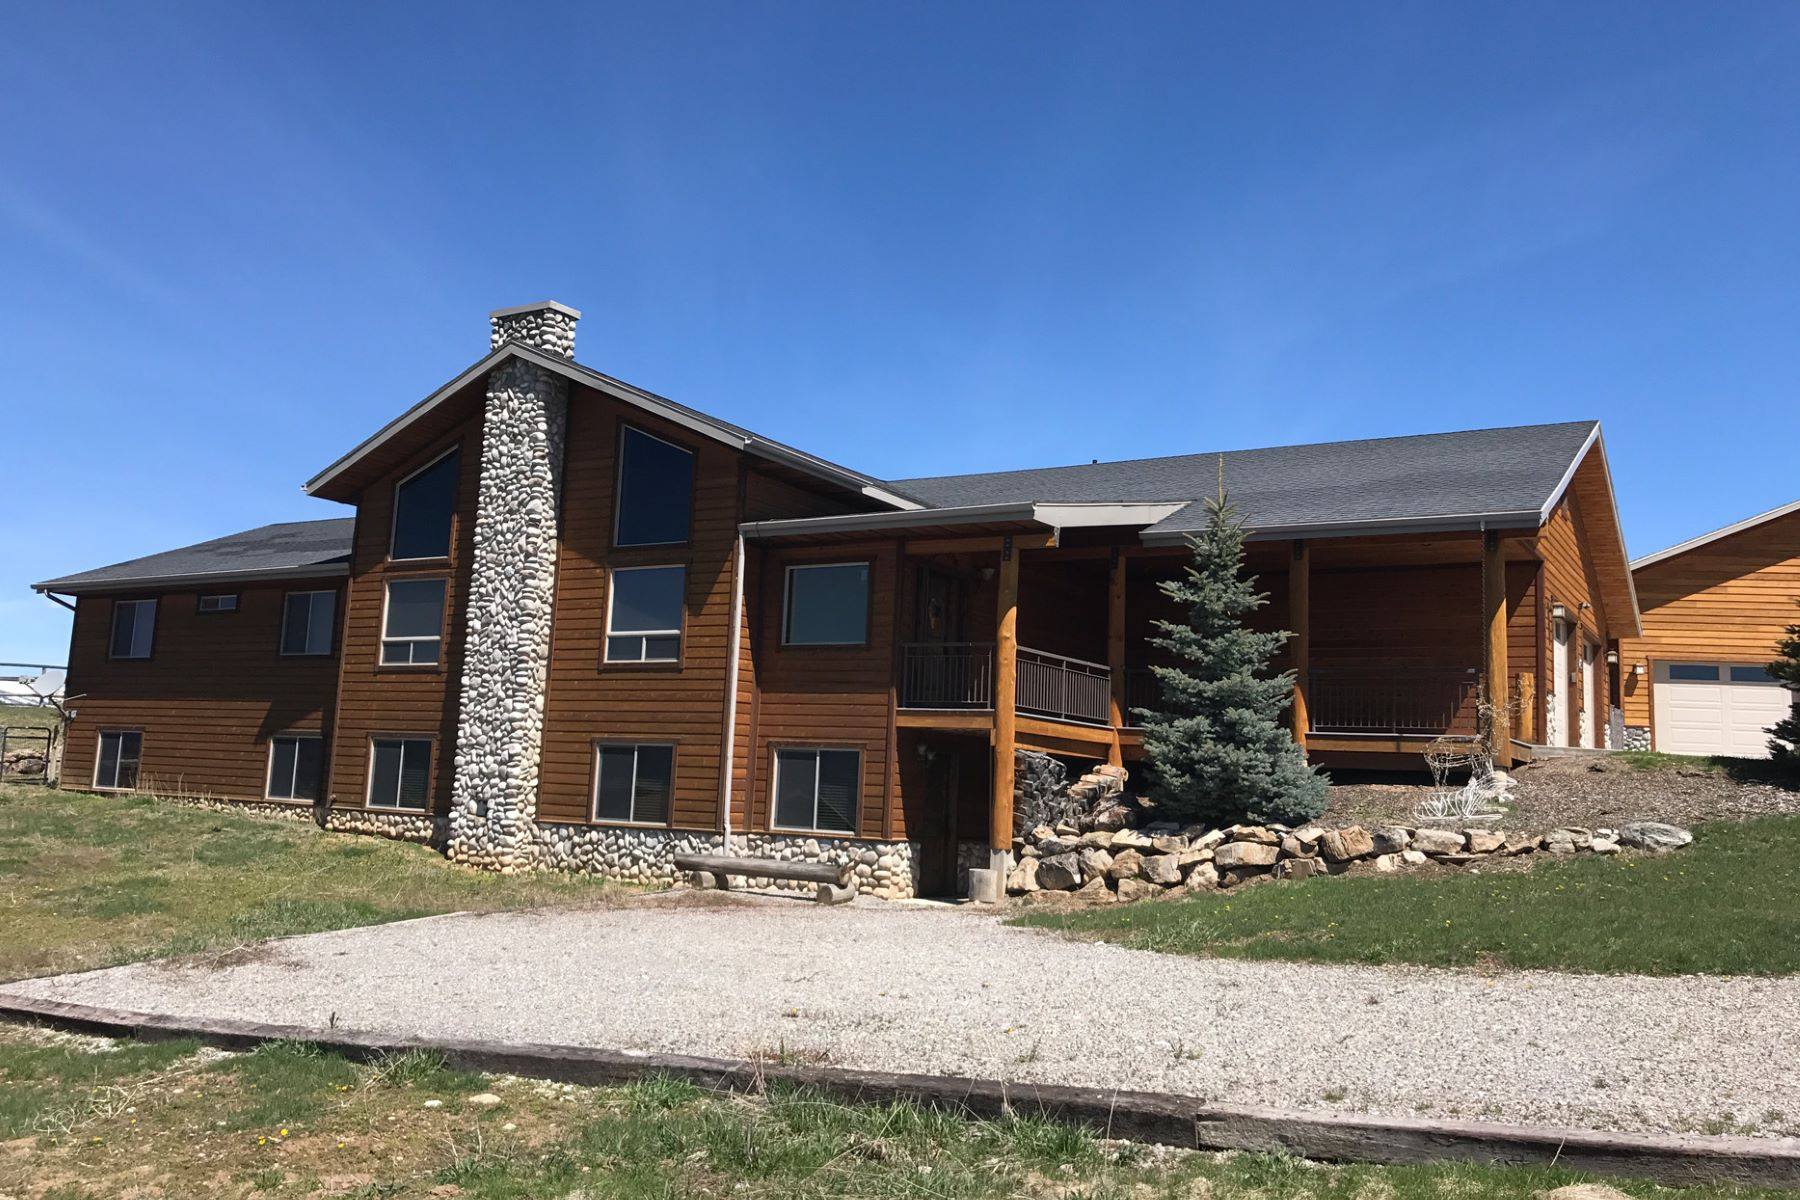 Maison unifamiliale pour l Vente à Extremely Well Maintained Home 265 Quaking Aspen Way, Etna, Wyoming, 83118 États-Unis